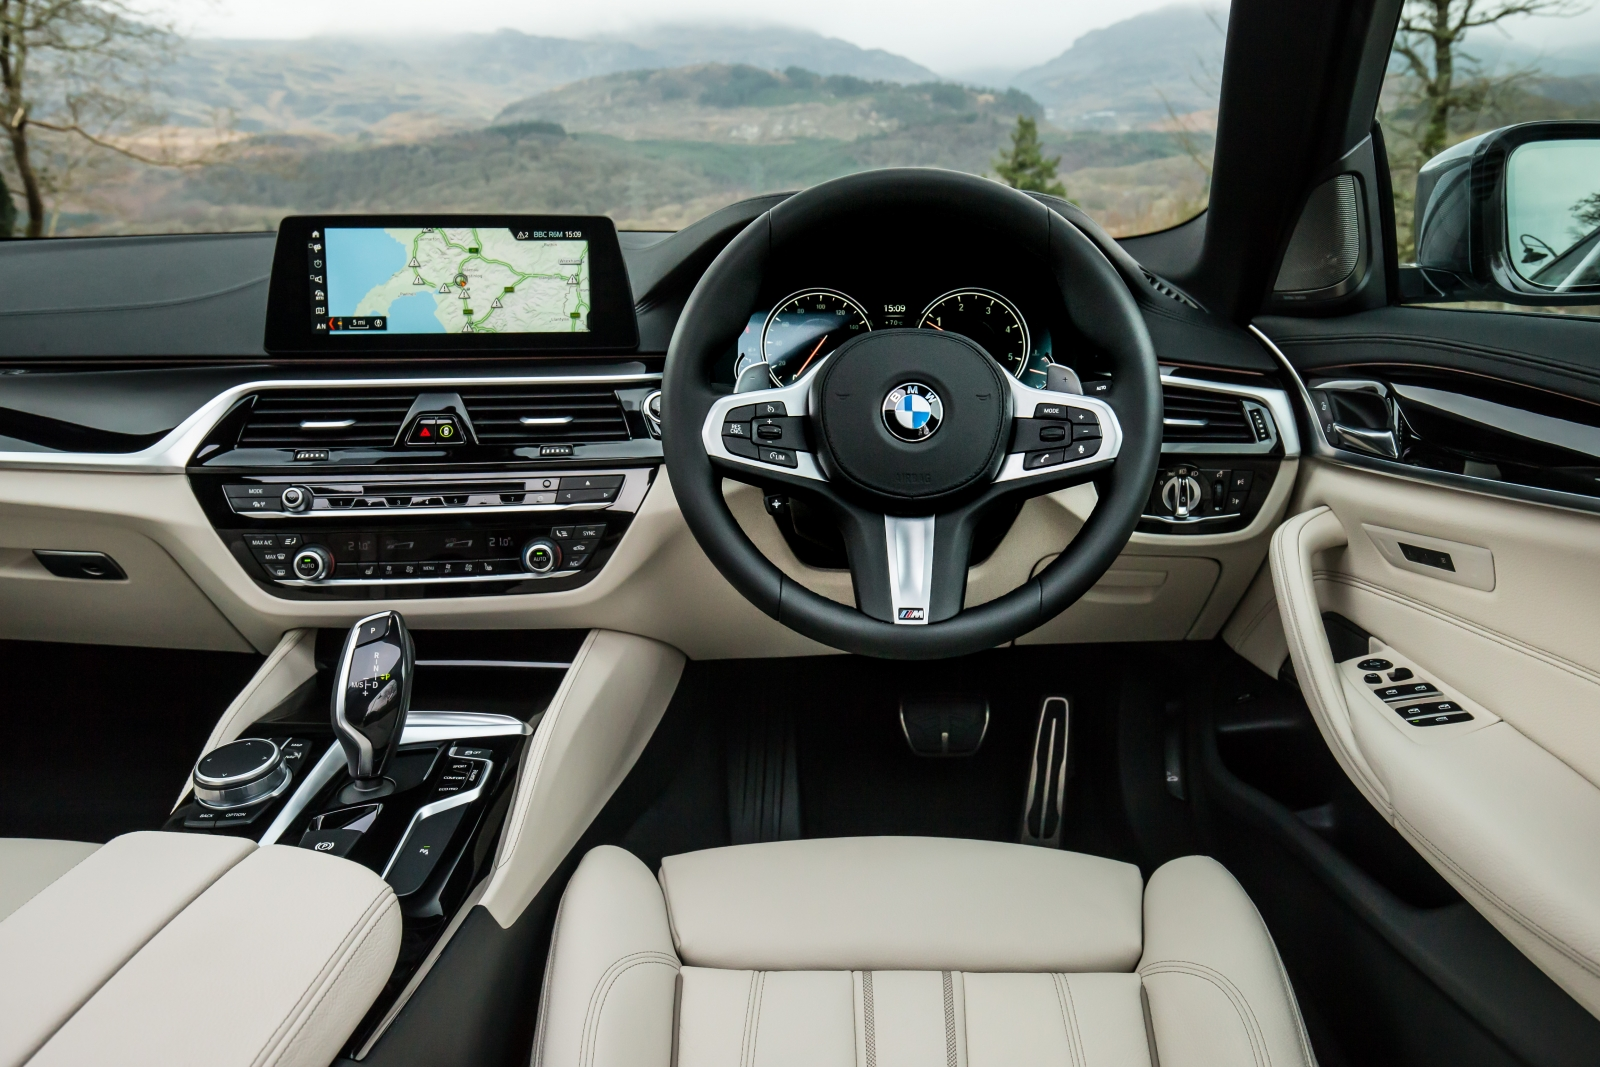 BMW 5-Series (2017) 530d M Sport interior